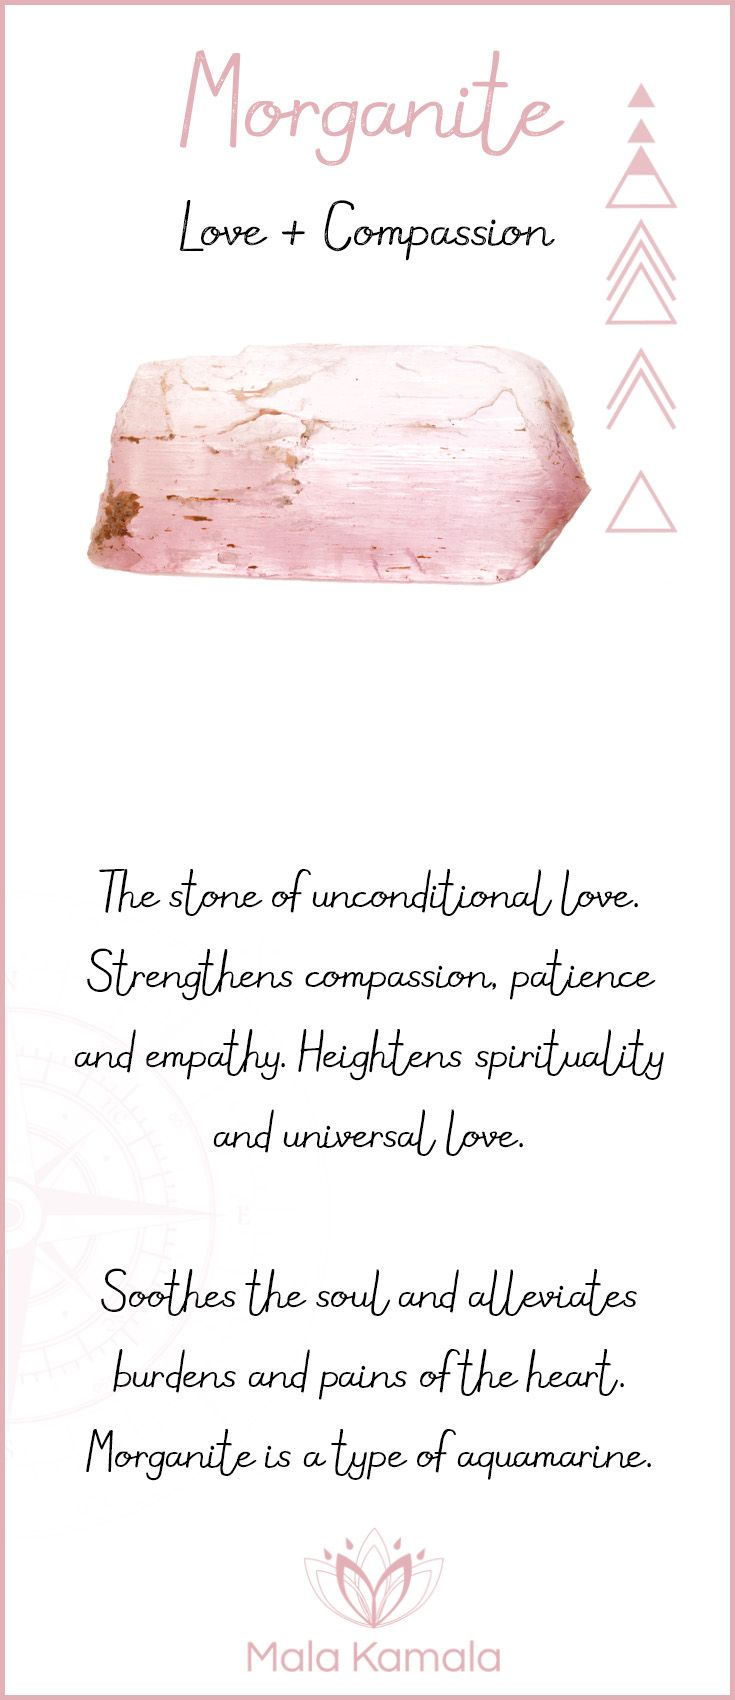 Pin To Save, Tap To Shop The Gem. What is the meaning and crystal and chakra healing properties of morganite? A stone for love and compassion. Mala Kamala Mala Beads - Malas, Mala Beads, Mala Bracelets, Tiny Intentions, Baby Necklaces, Yoga Jewelry, Medit